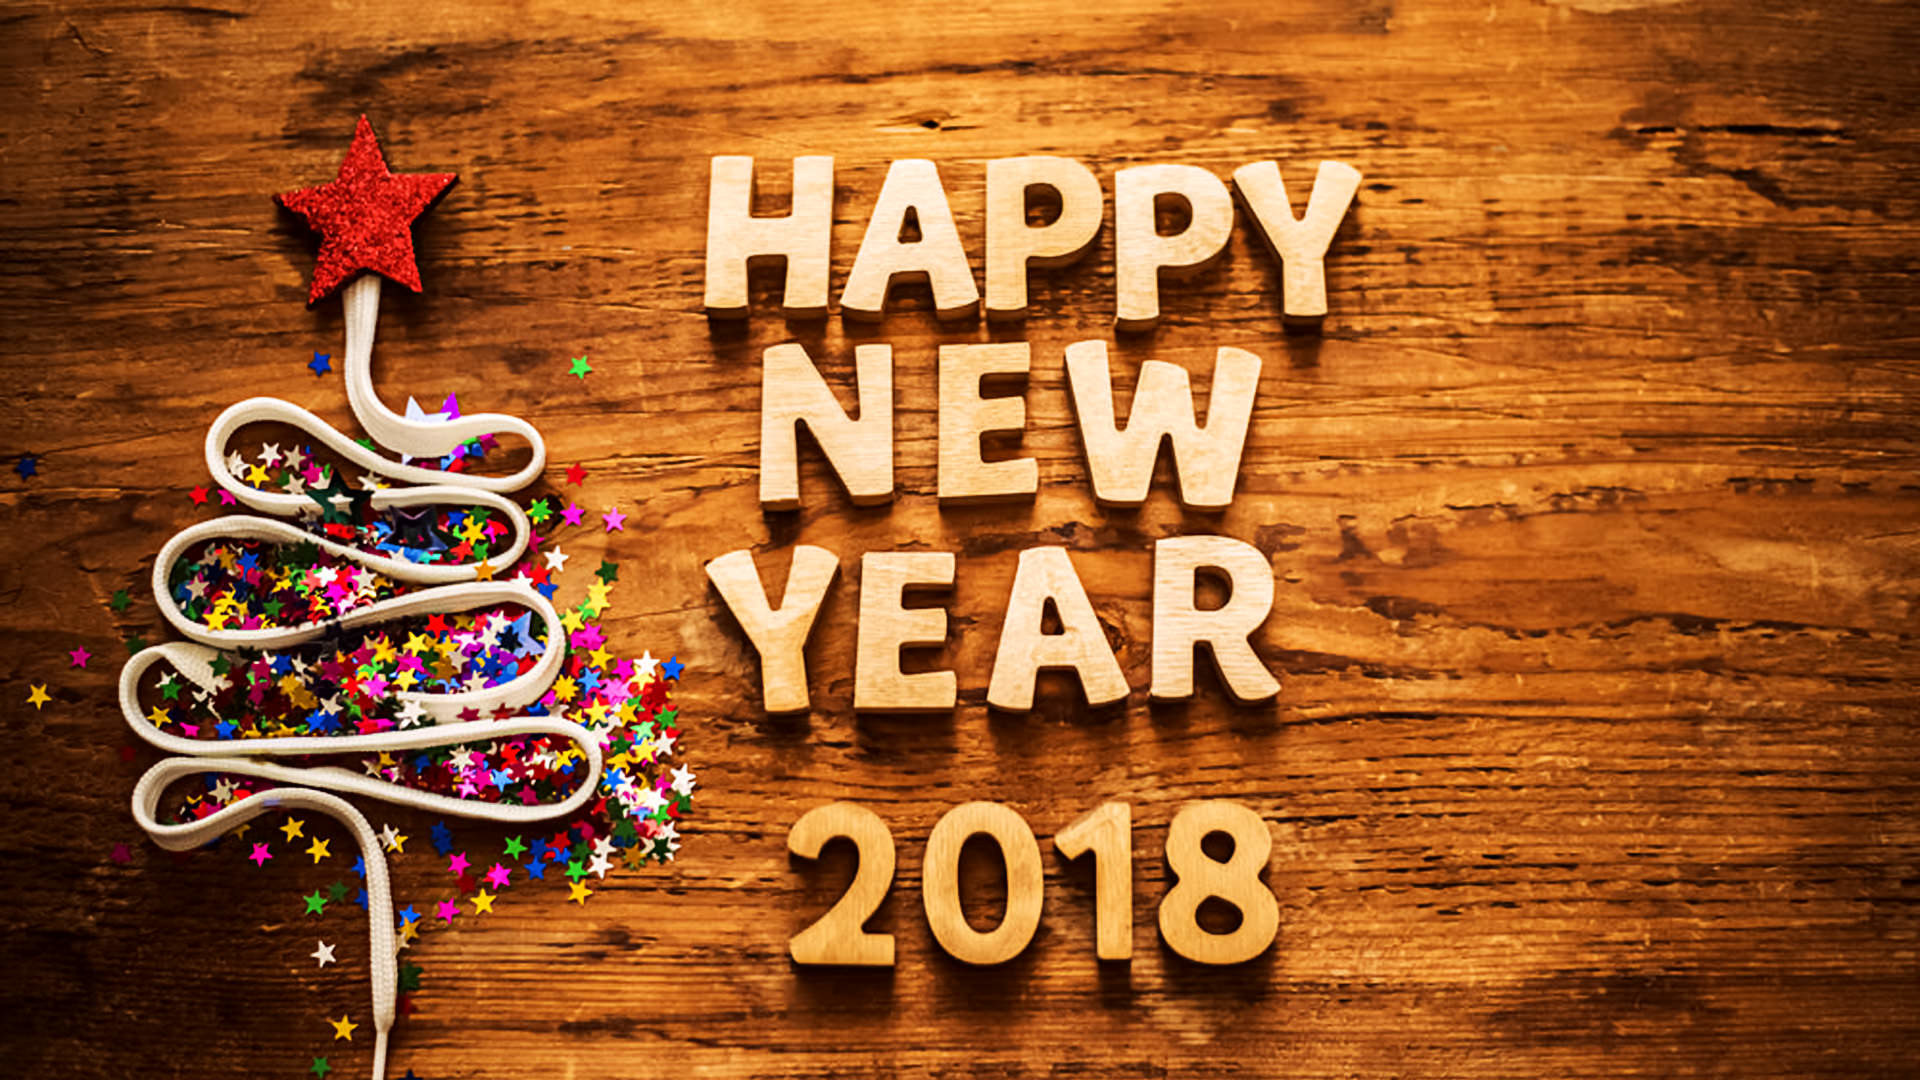 1920x1080 simple new year 2018 wallpaper for desktop download